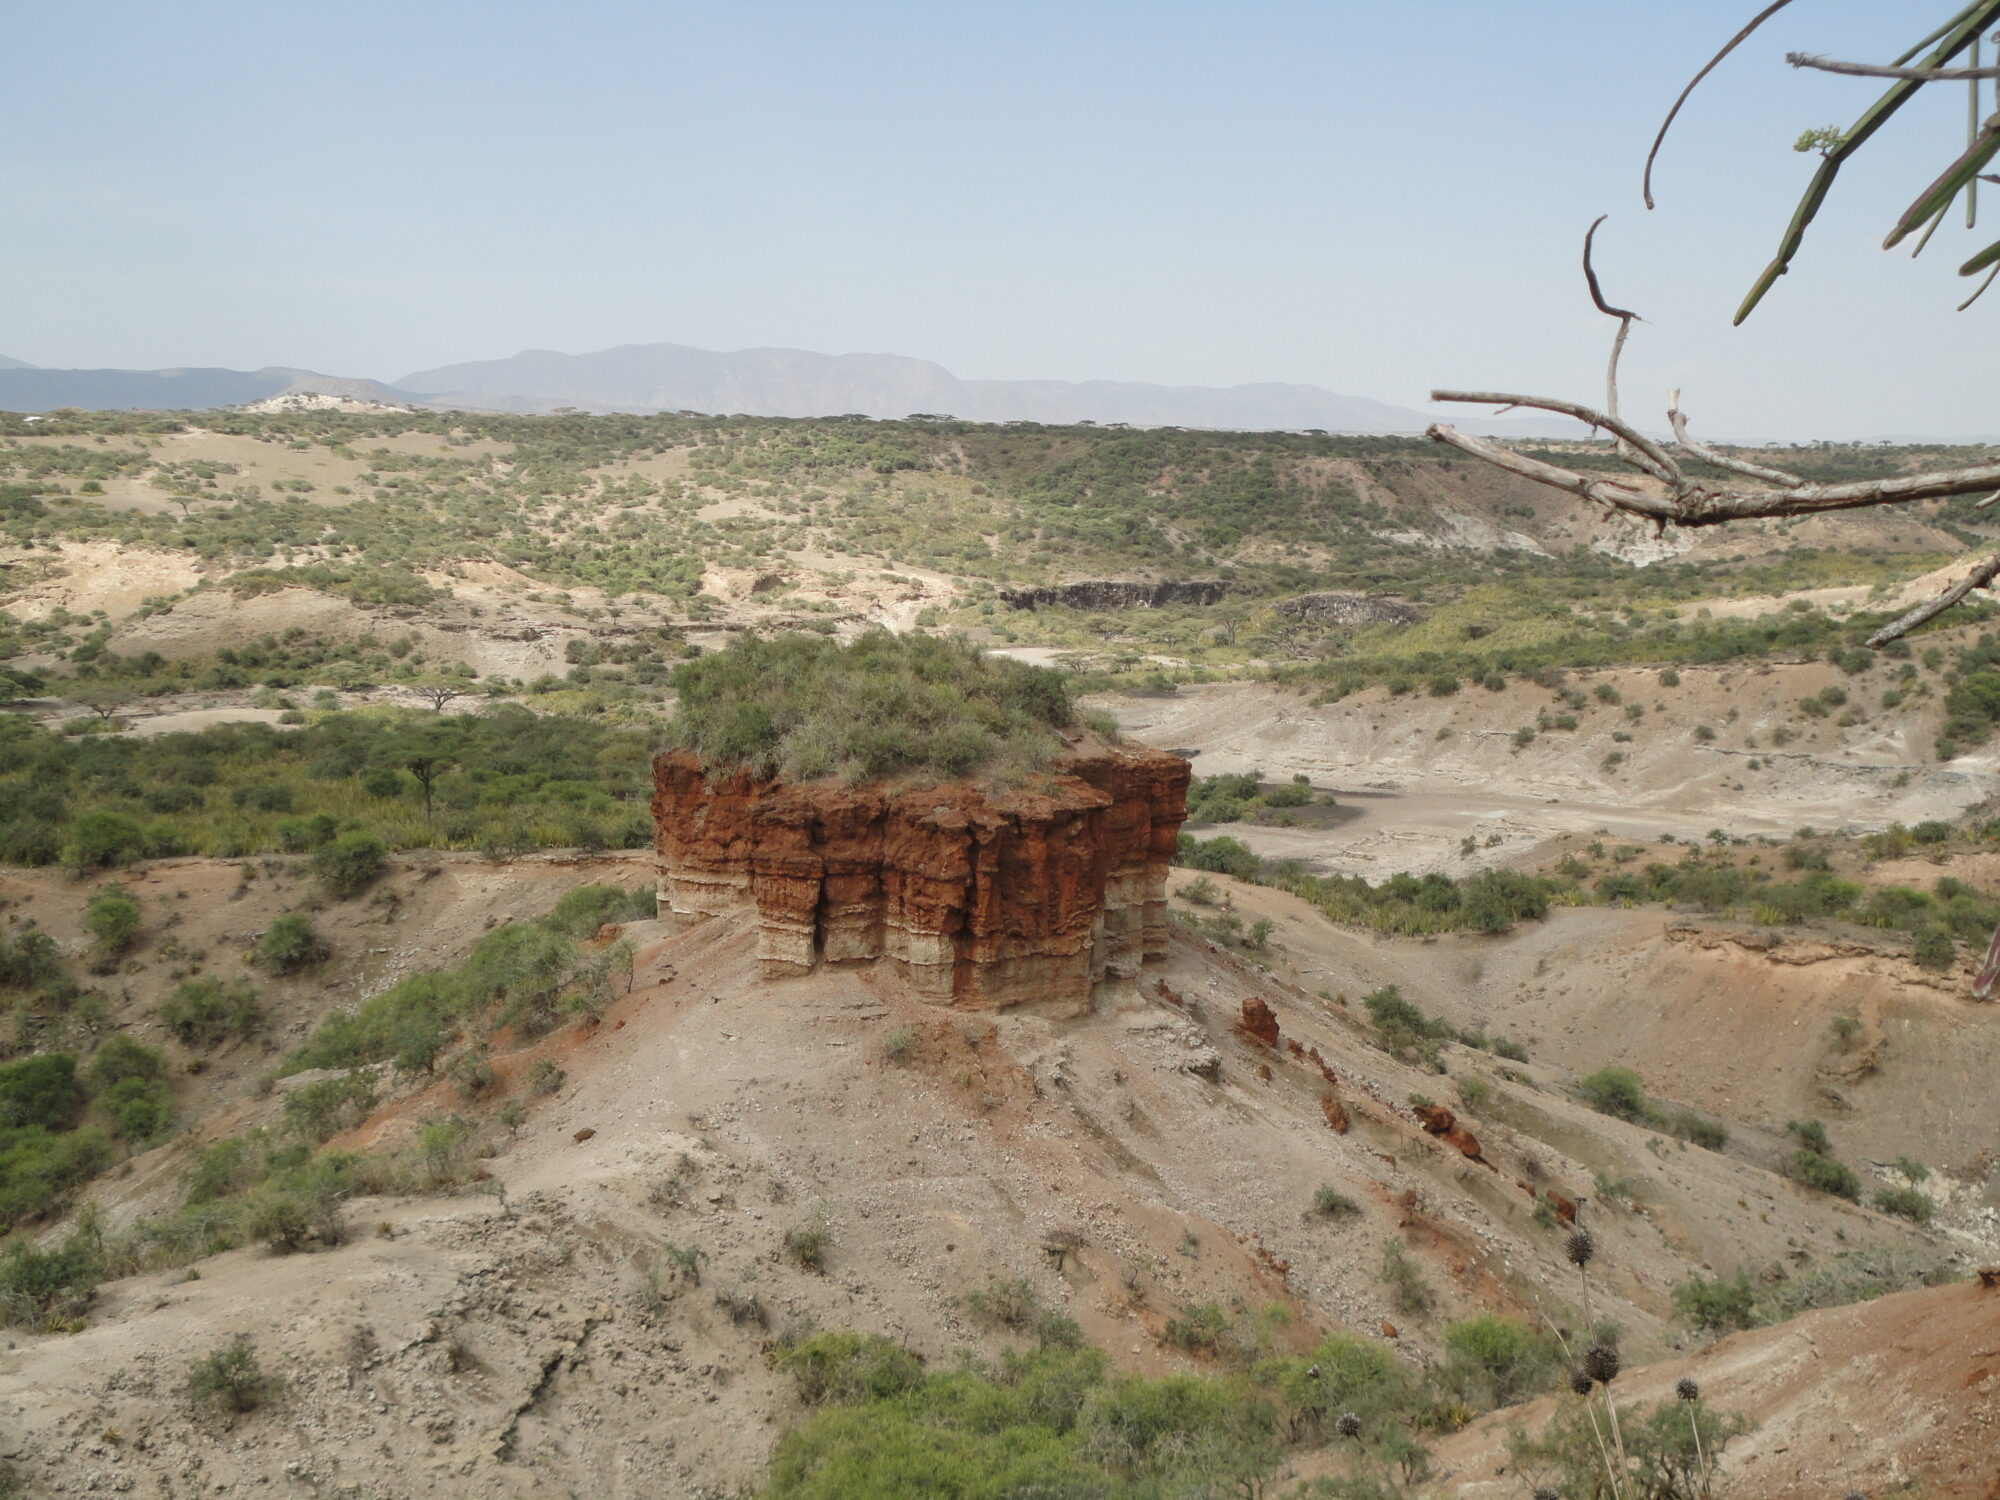 Travel Medicine - The Olduvai Gorge